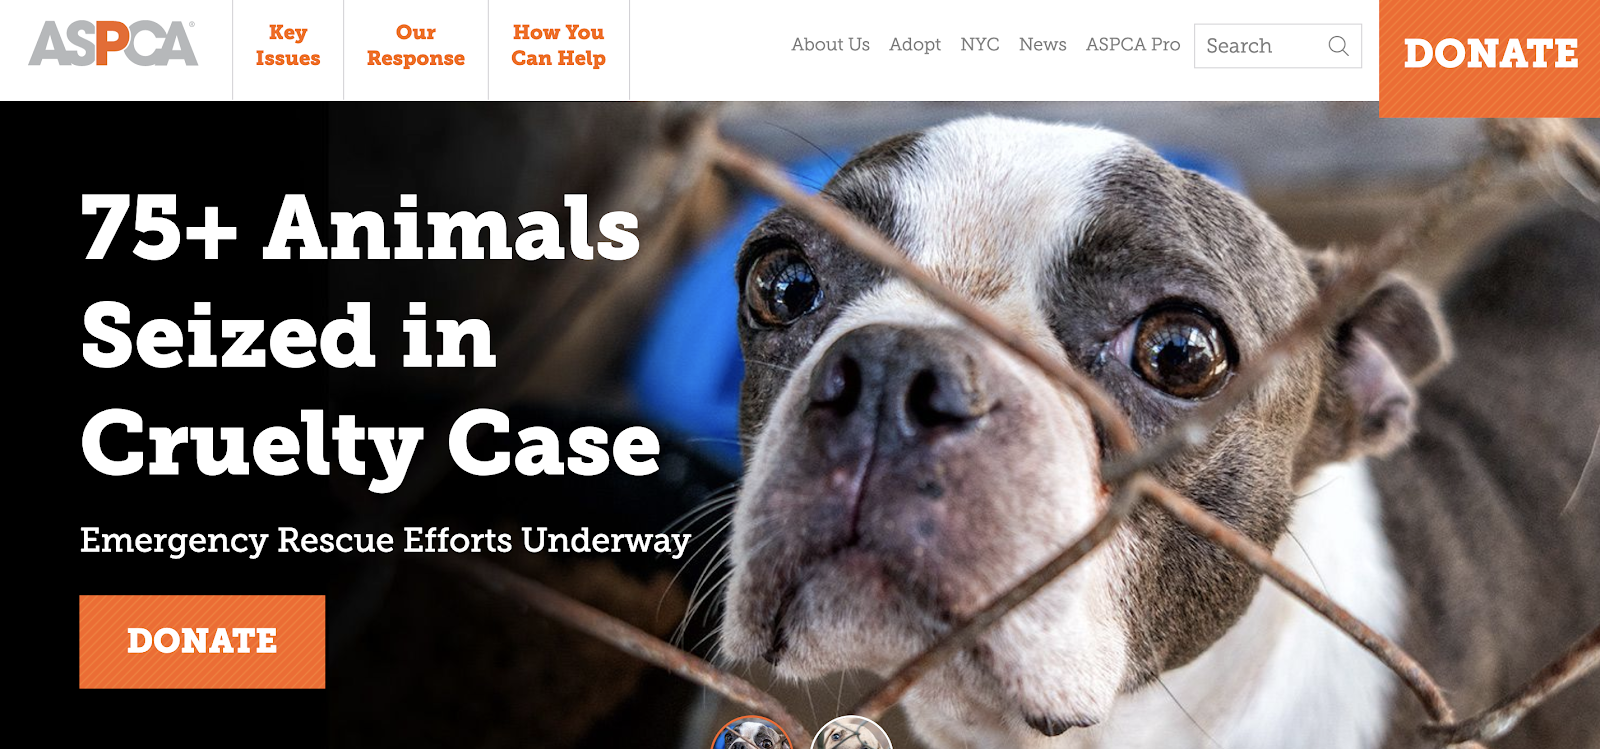 example of psychographic segmentation on ASPCA homepage.